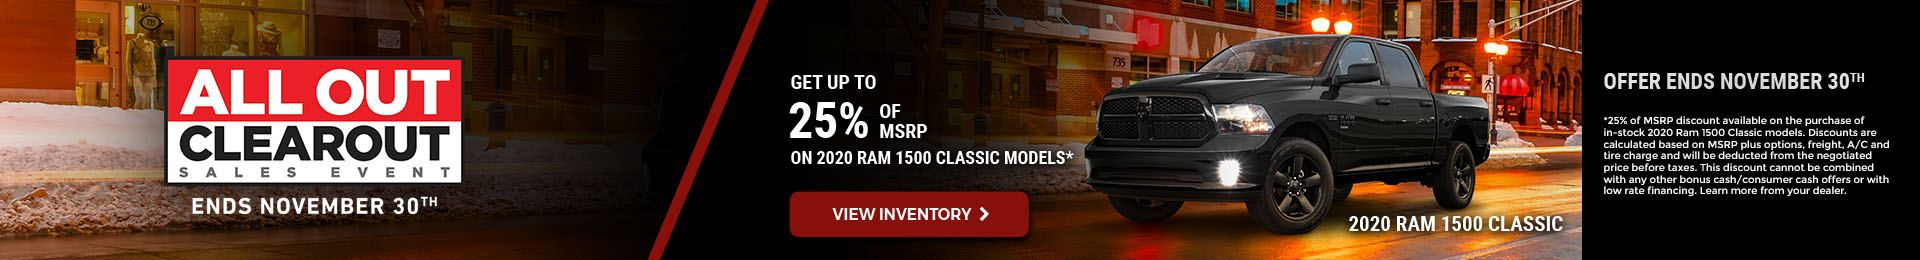 November 2020 RAM 1500 Classic Offer